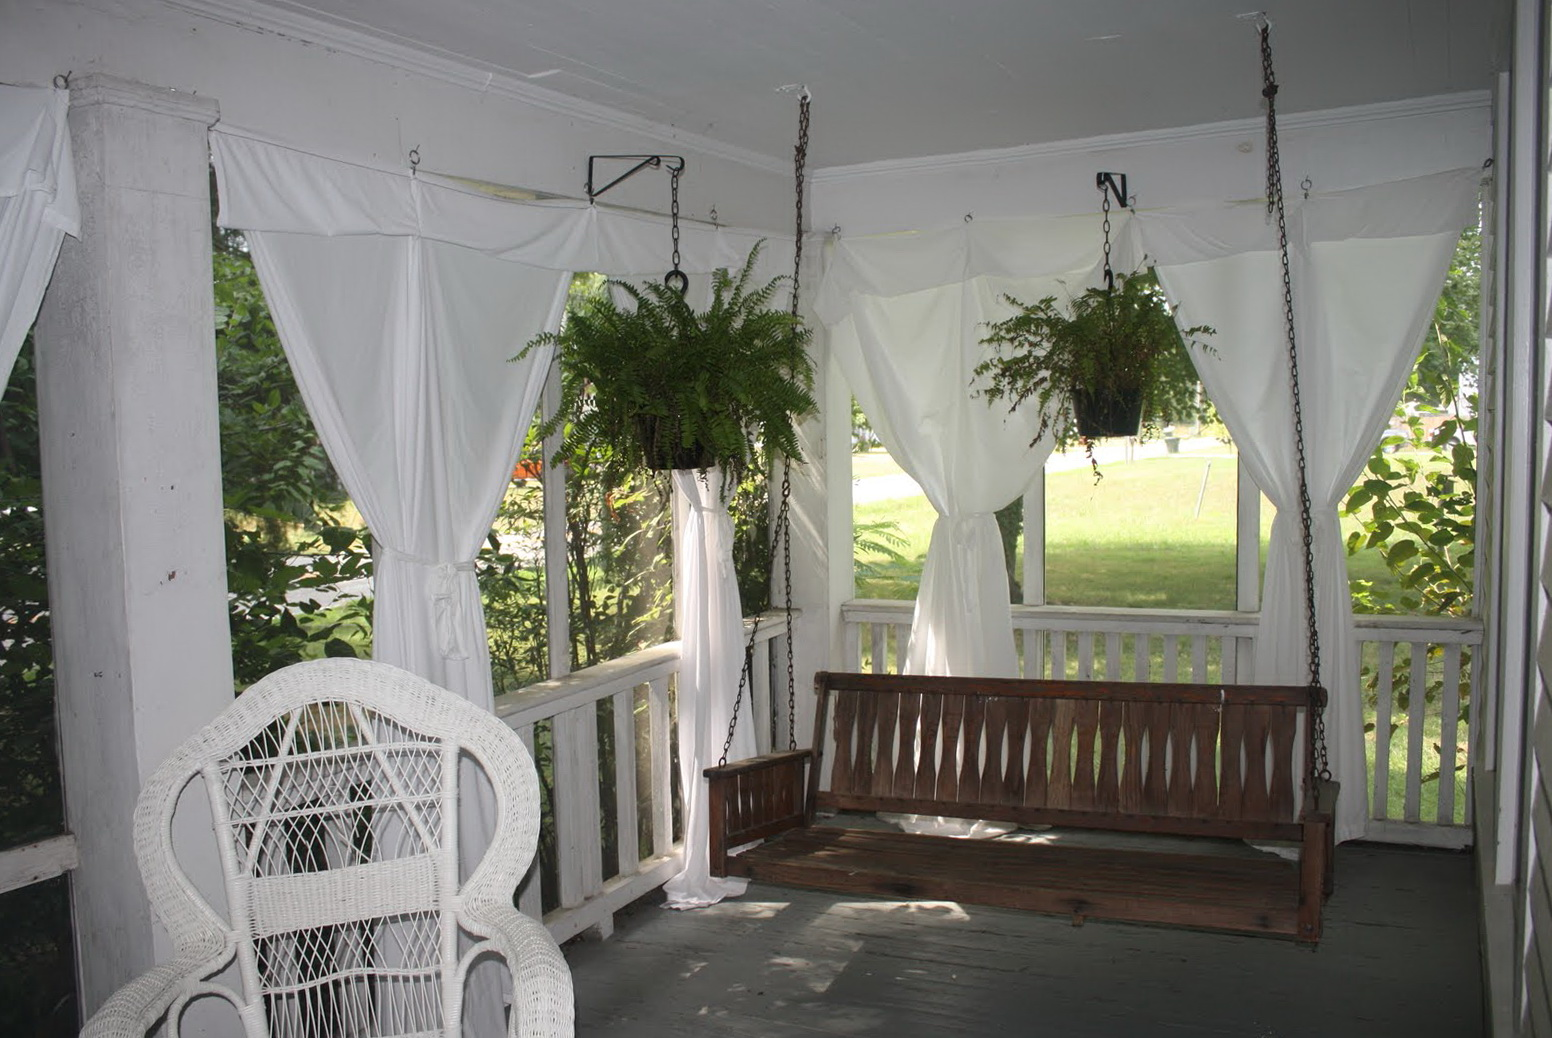 they so pergola inside it lights put ve shade garden up outdoor great by pinterest estelius on built which and love room pin i can be that curtains daniel ceiling their would also for this